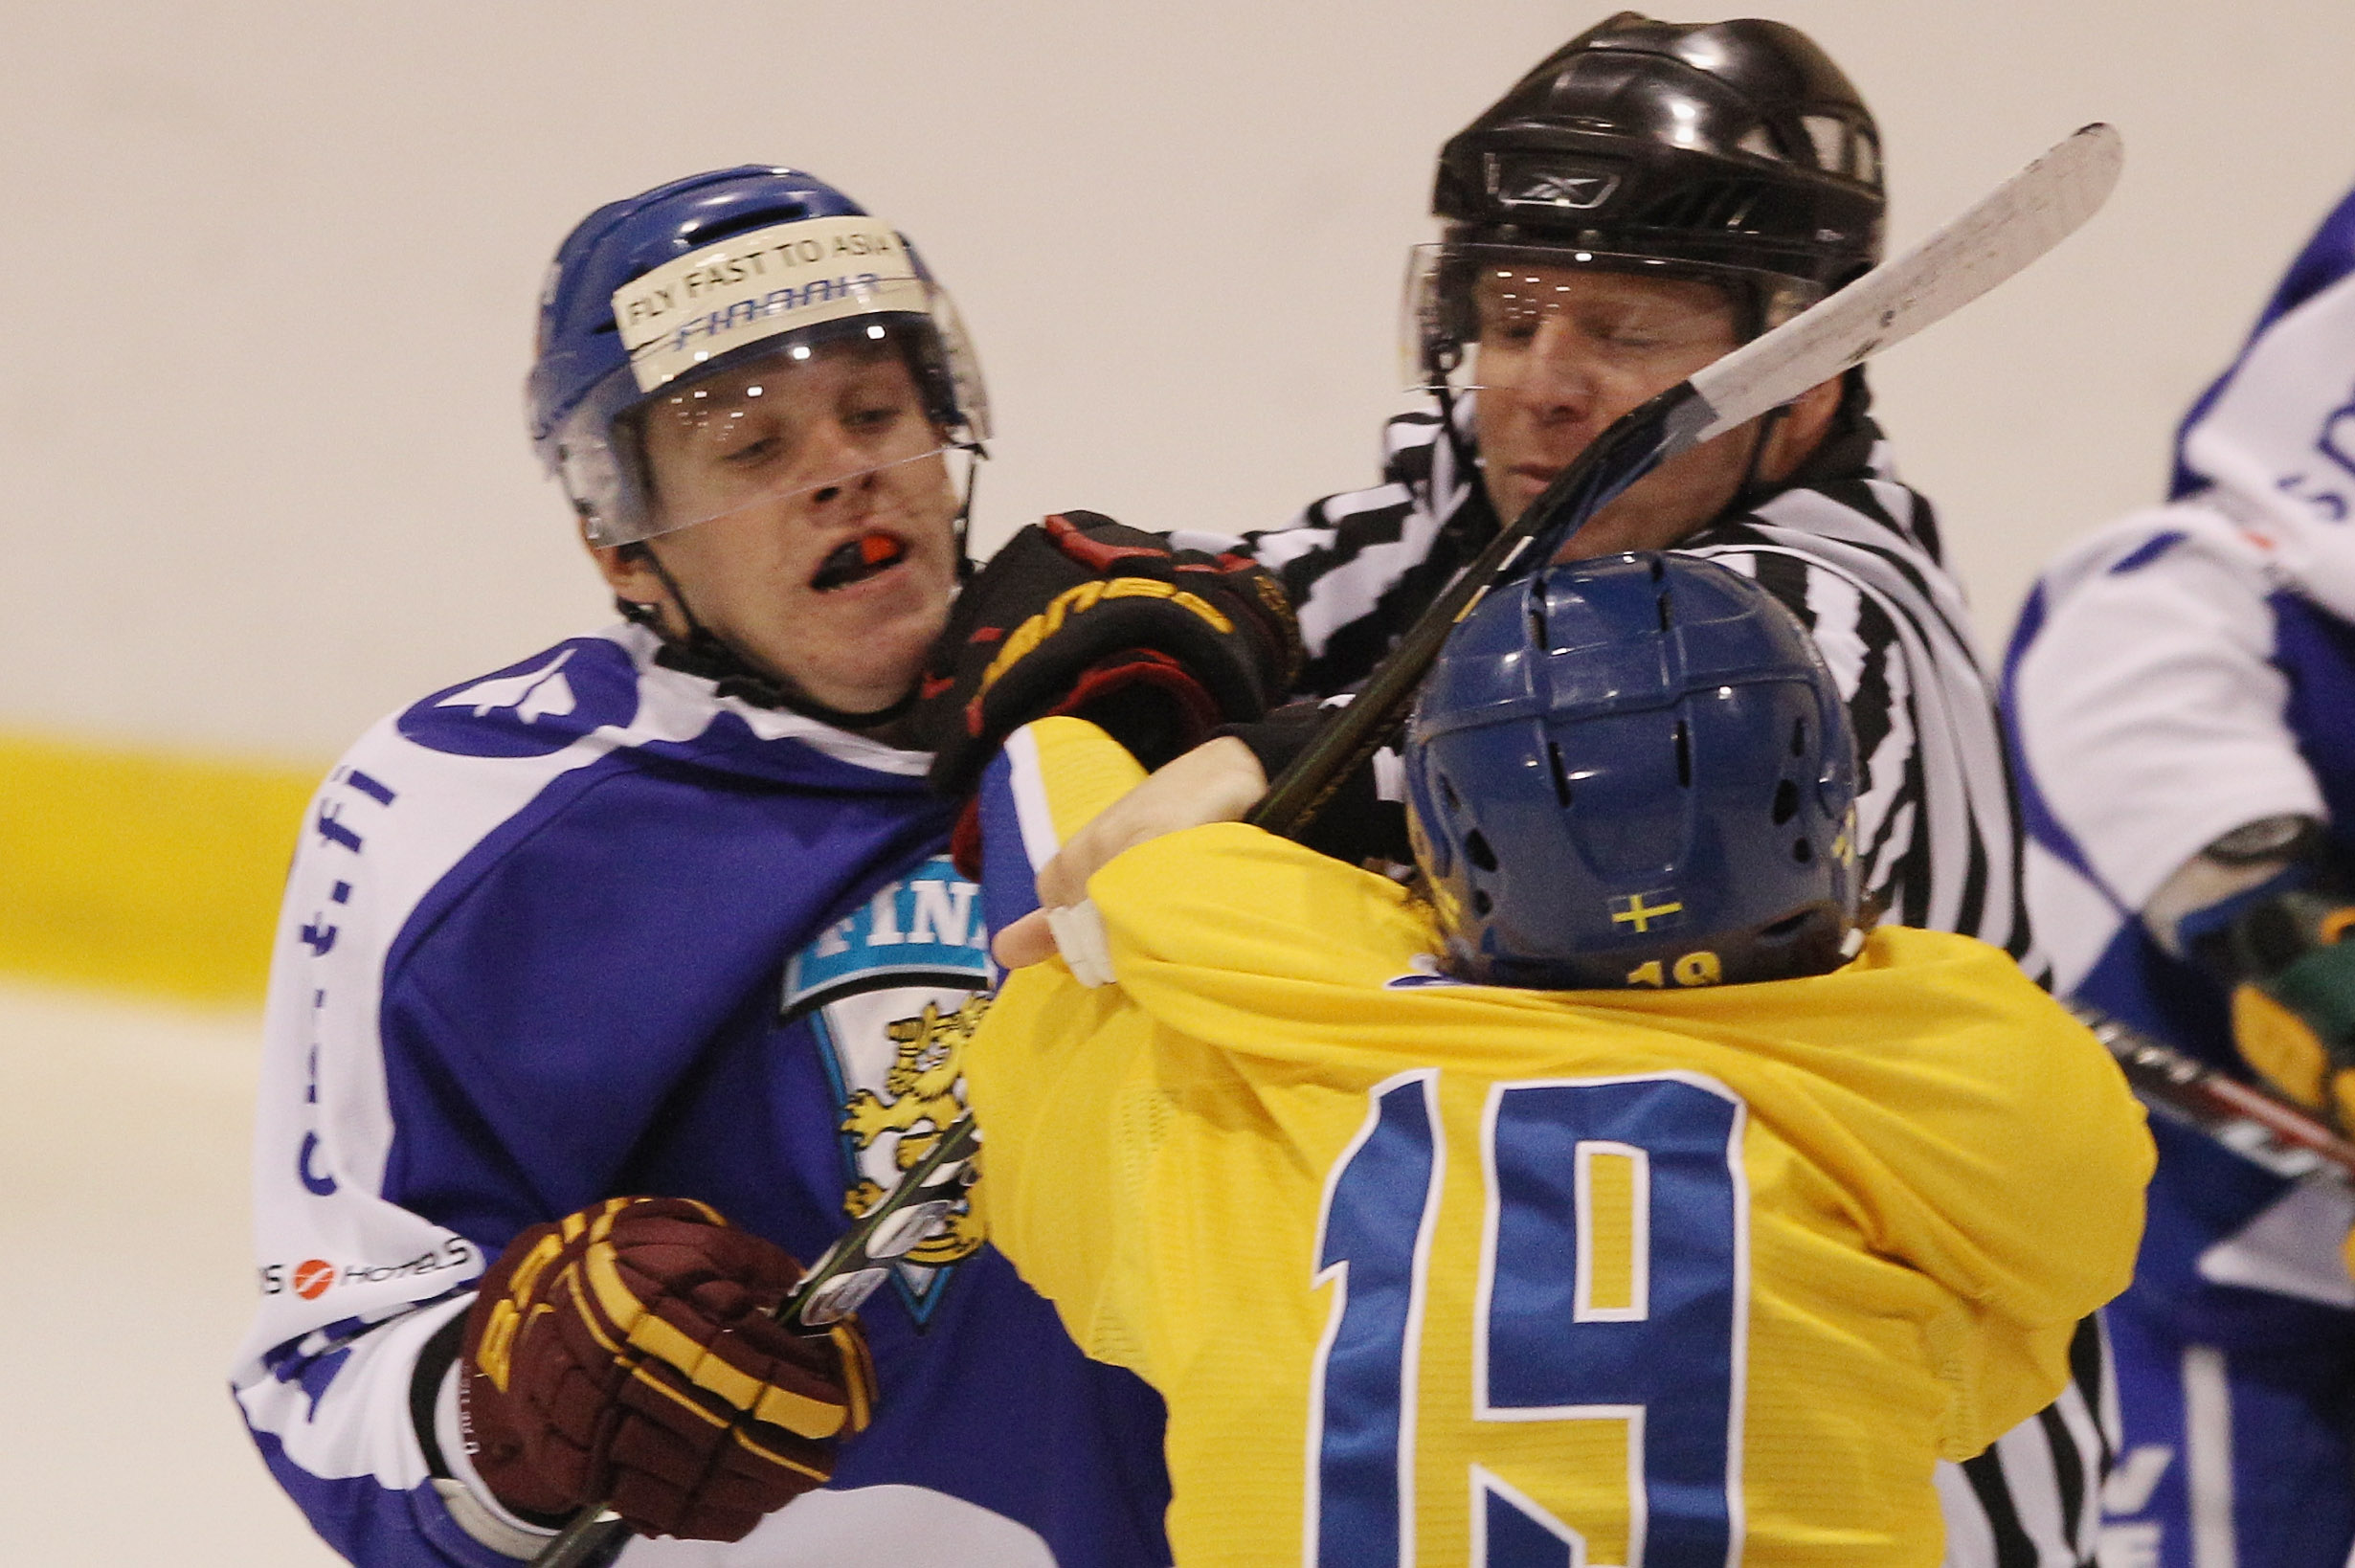 LAKE PLACID, NY - AUGUST 05: Erik Haula #10 of Team Finland is hit by Calle Jarnkrok #19 of Team Sweden at the USA Hockey National Evaluation Camp on August 5, 2010 in Lake Placid, New York.  (Photo by Bruce Bennett/Getty Images)